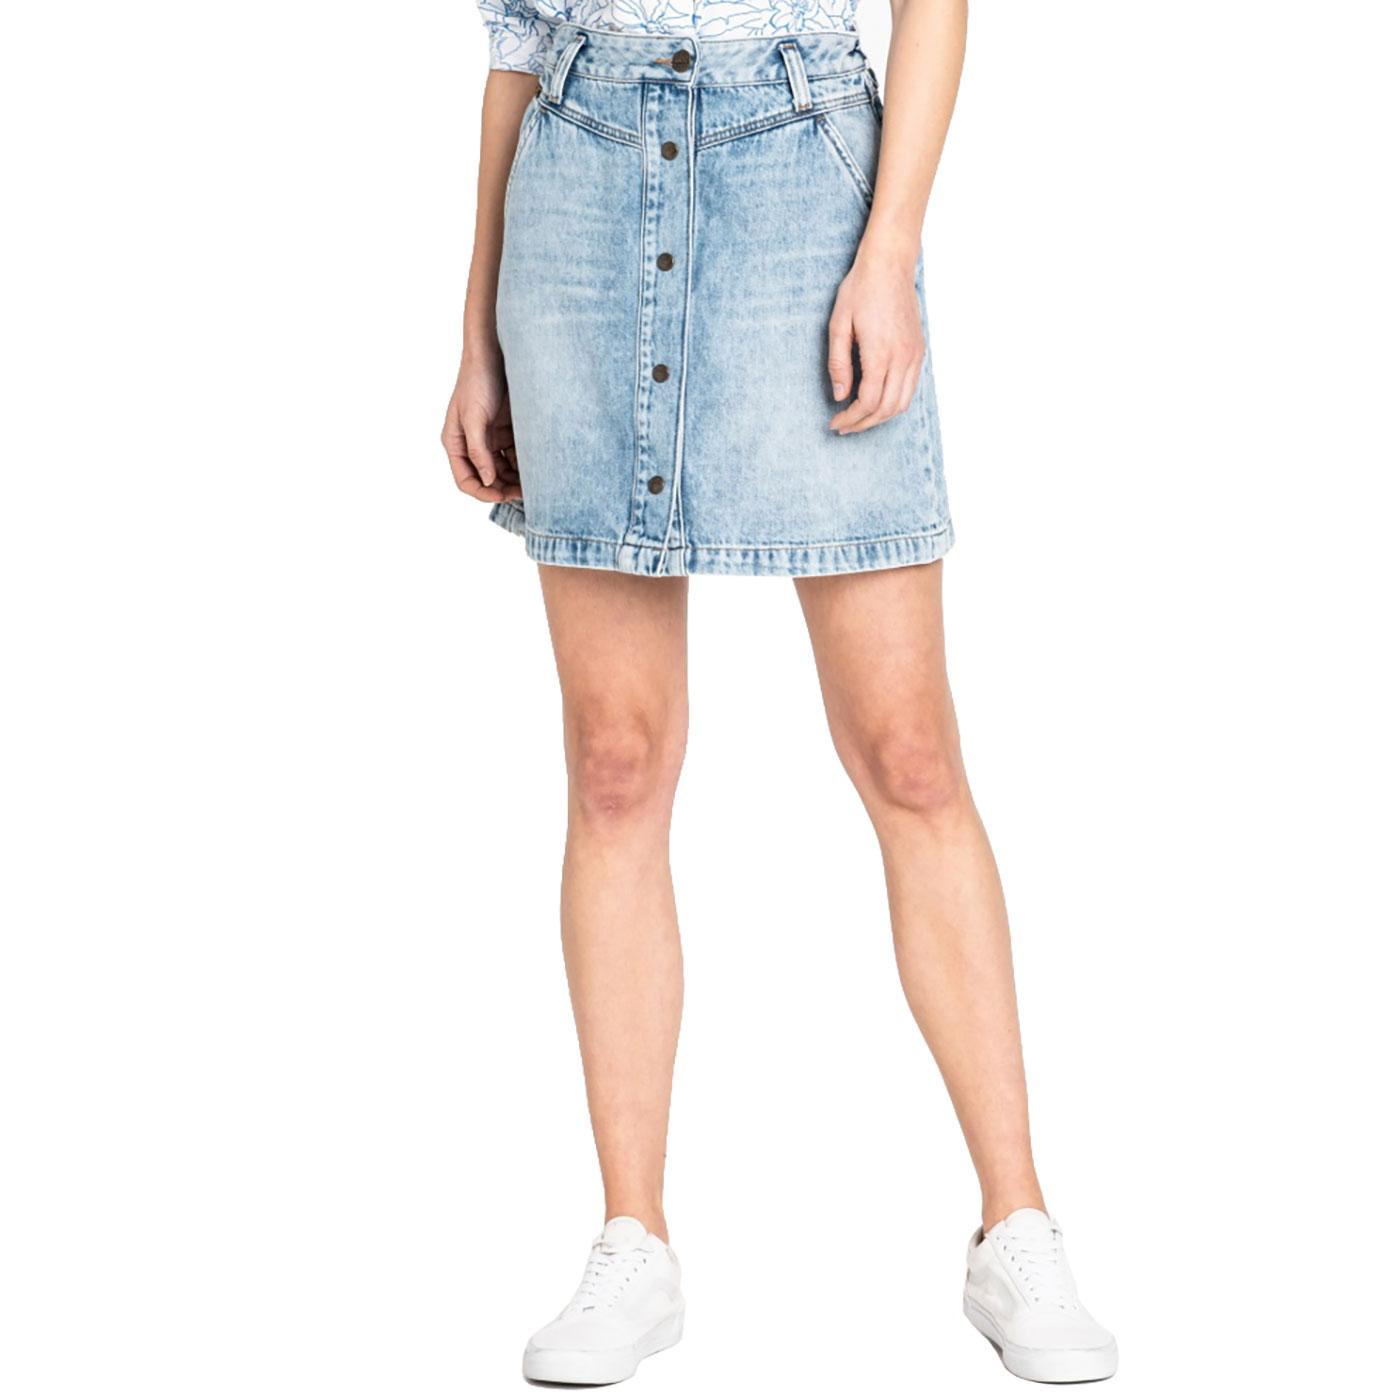 0f50be25845e LEE Women's Retro Denim Button Front A-Line Skirt Get Light